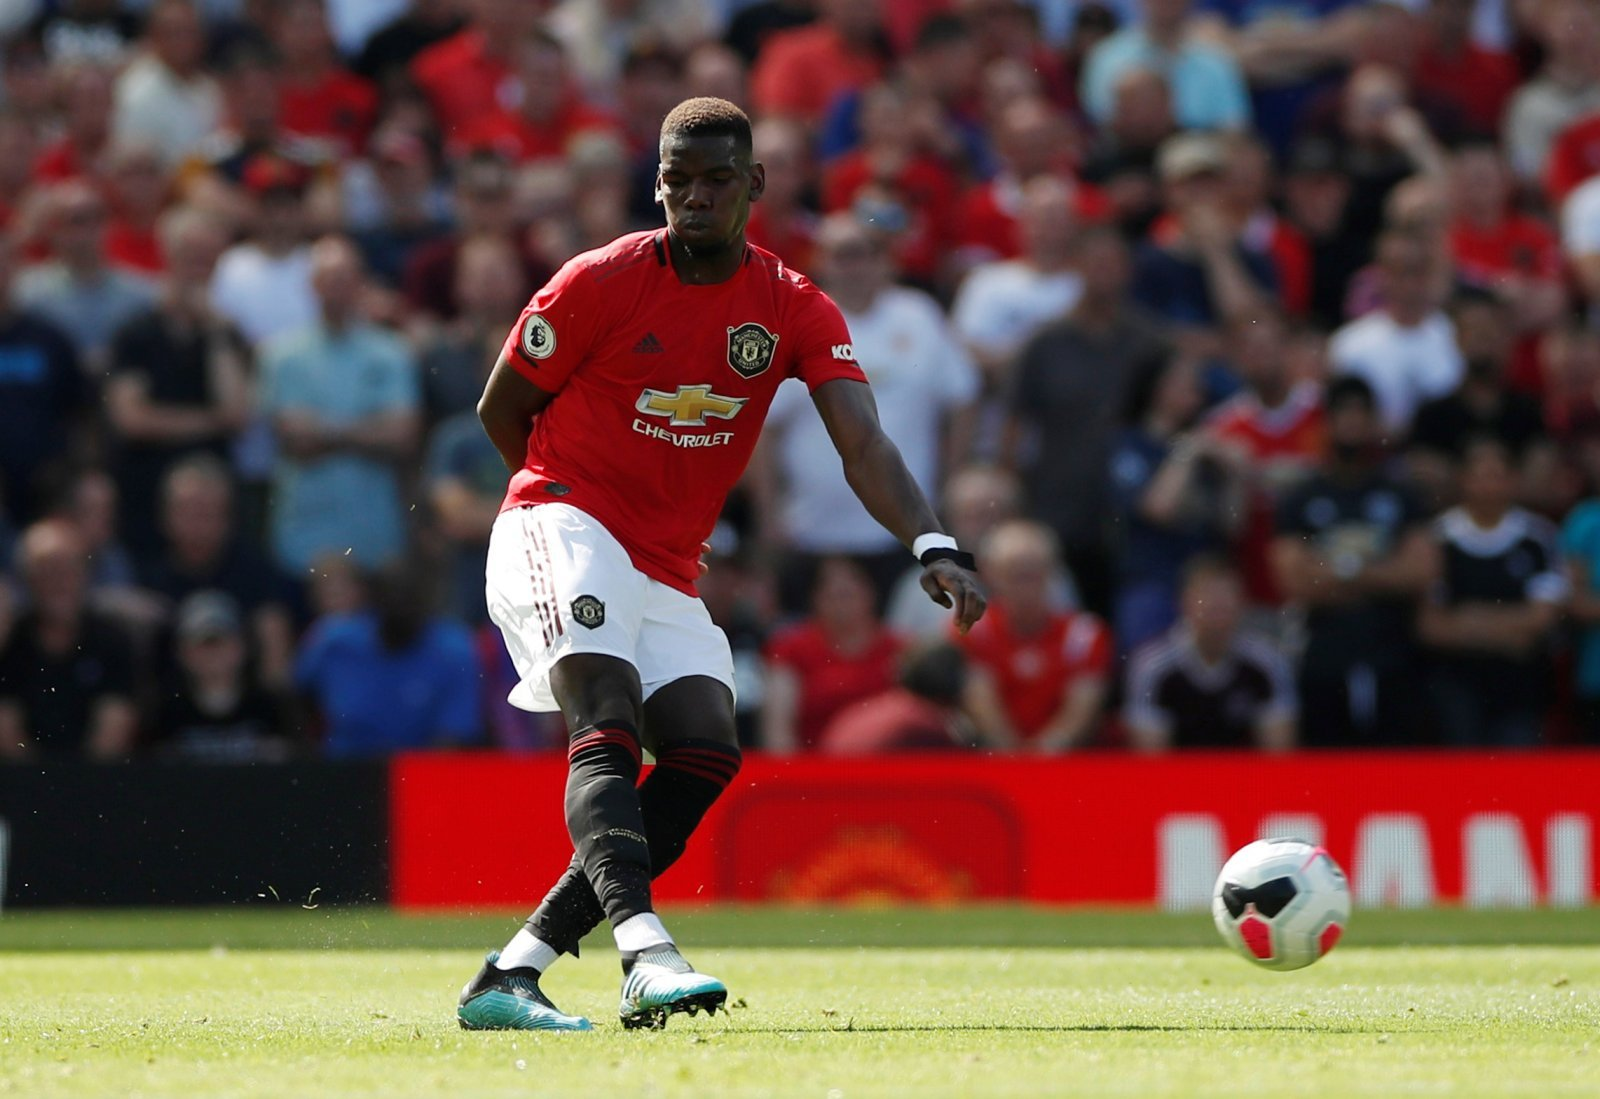 Manchester United: Club deny claims Paul Pogba's holding them to ransom